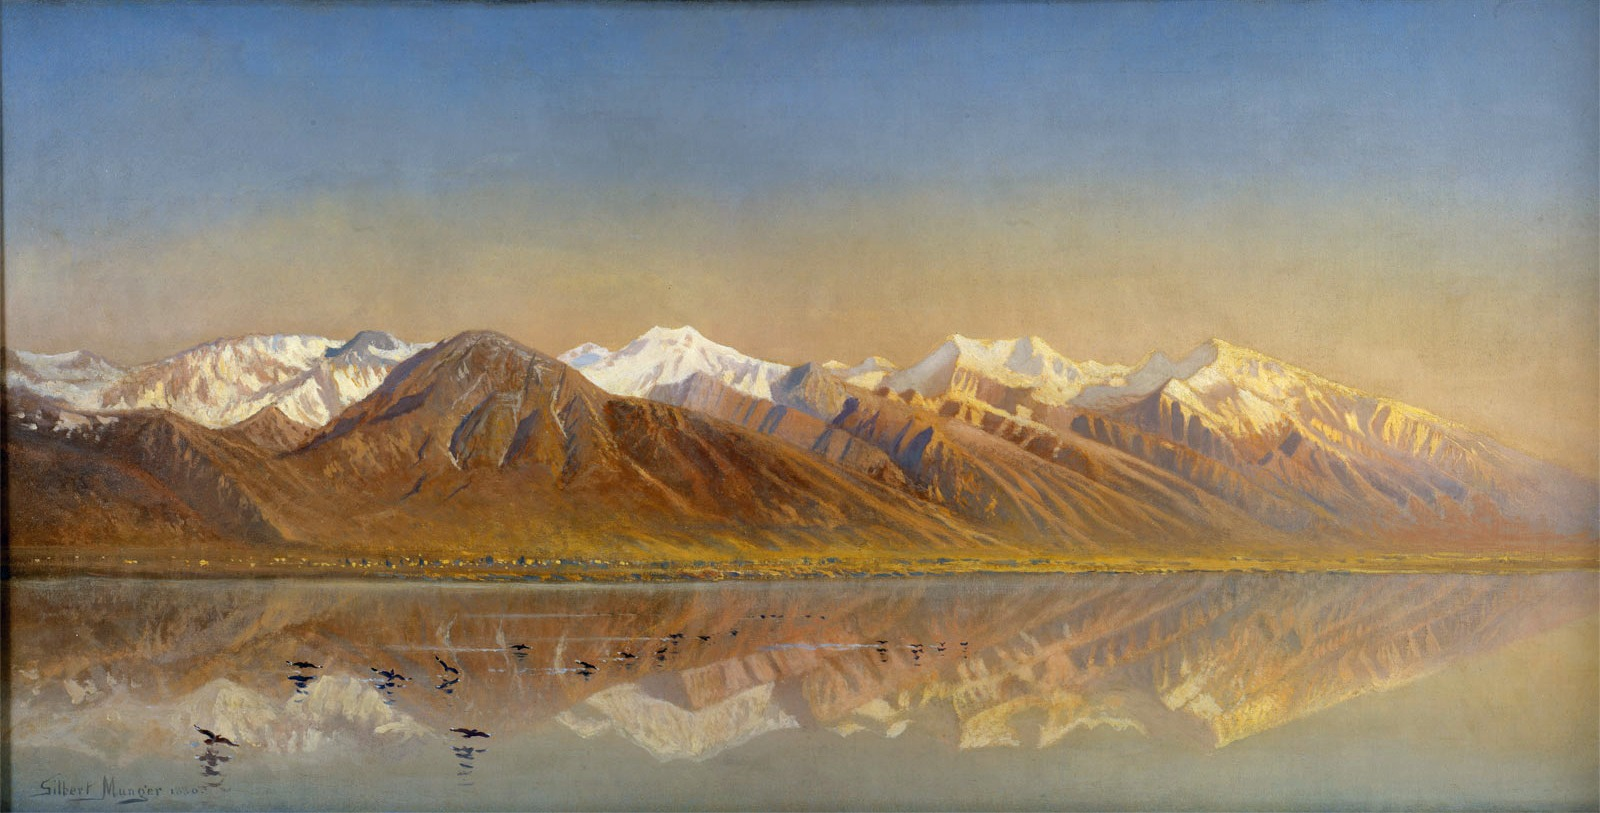 SLC Gilbert Davis Munger - Great Salt Lake Utah and the Wasatch Mountains 1880